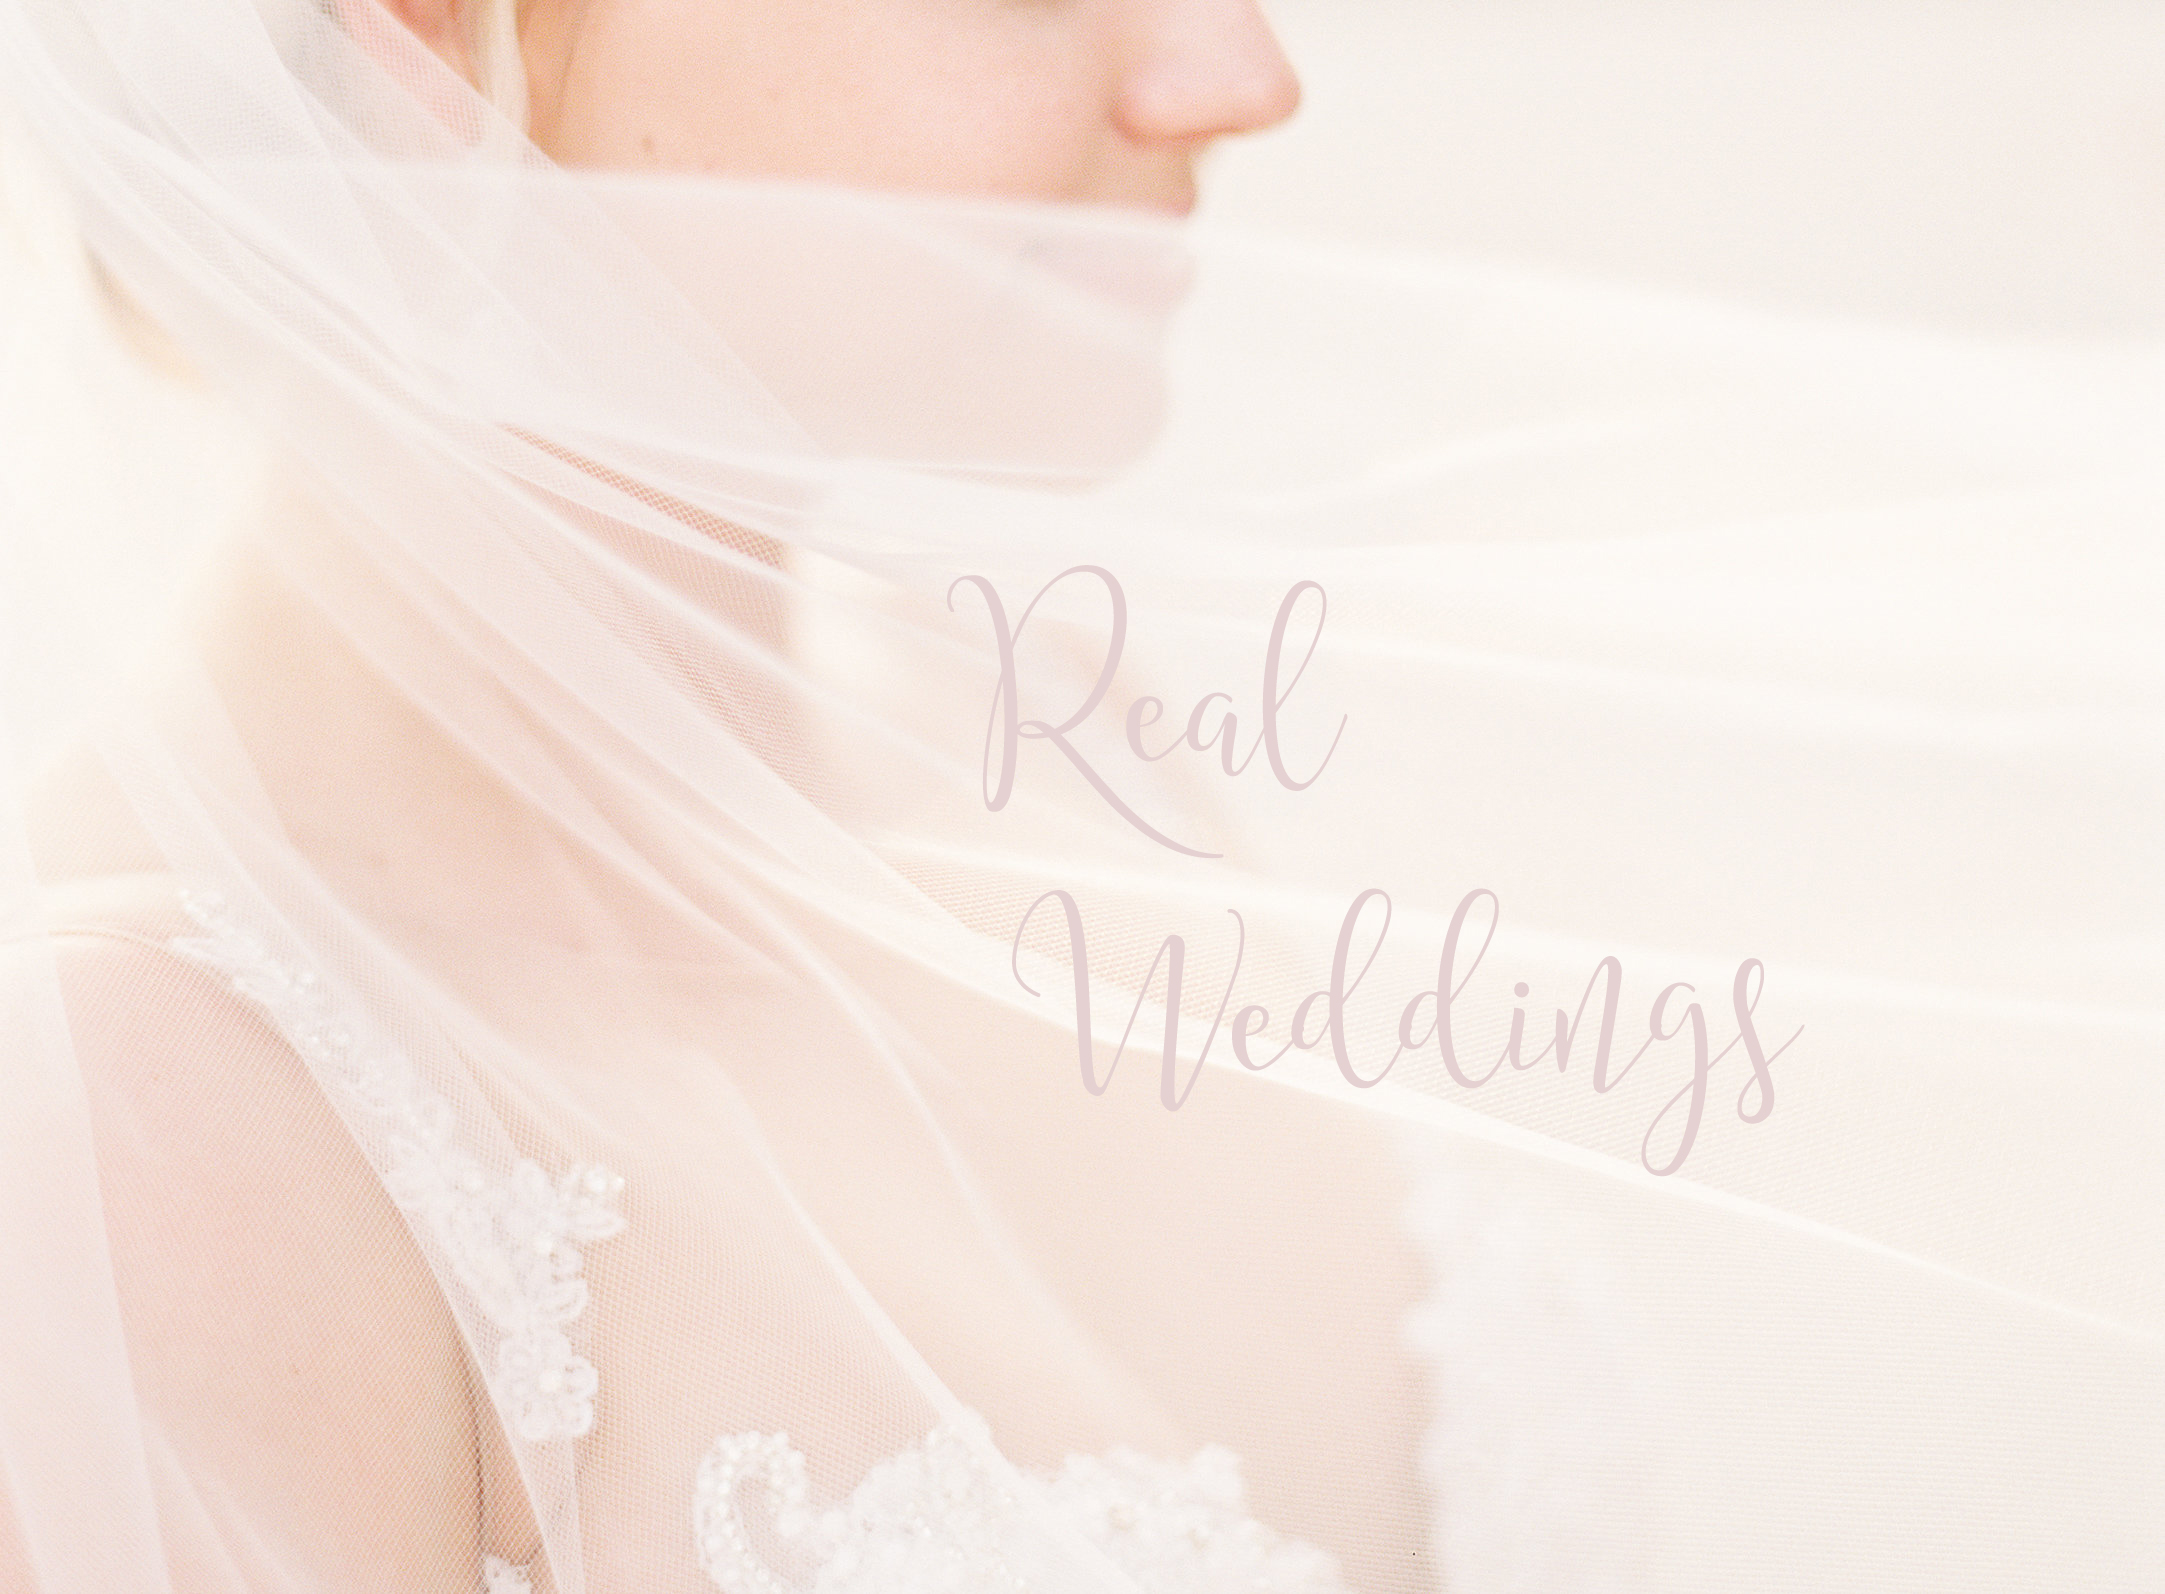 houston-wedding-cover-photo.jpg